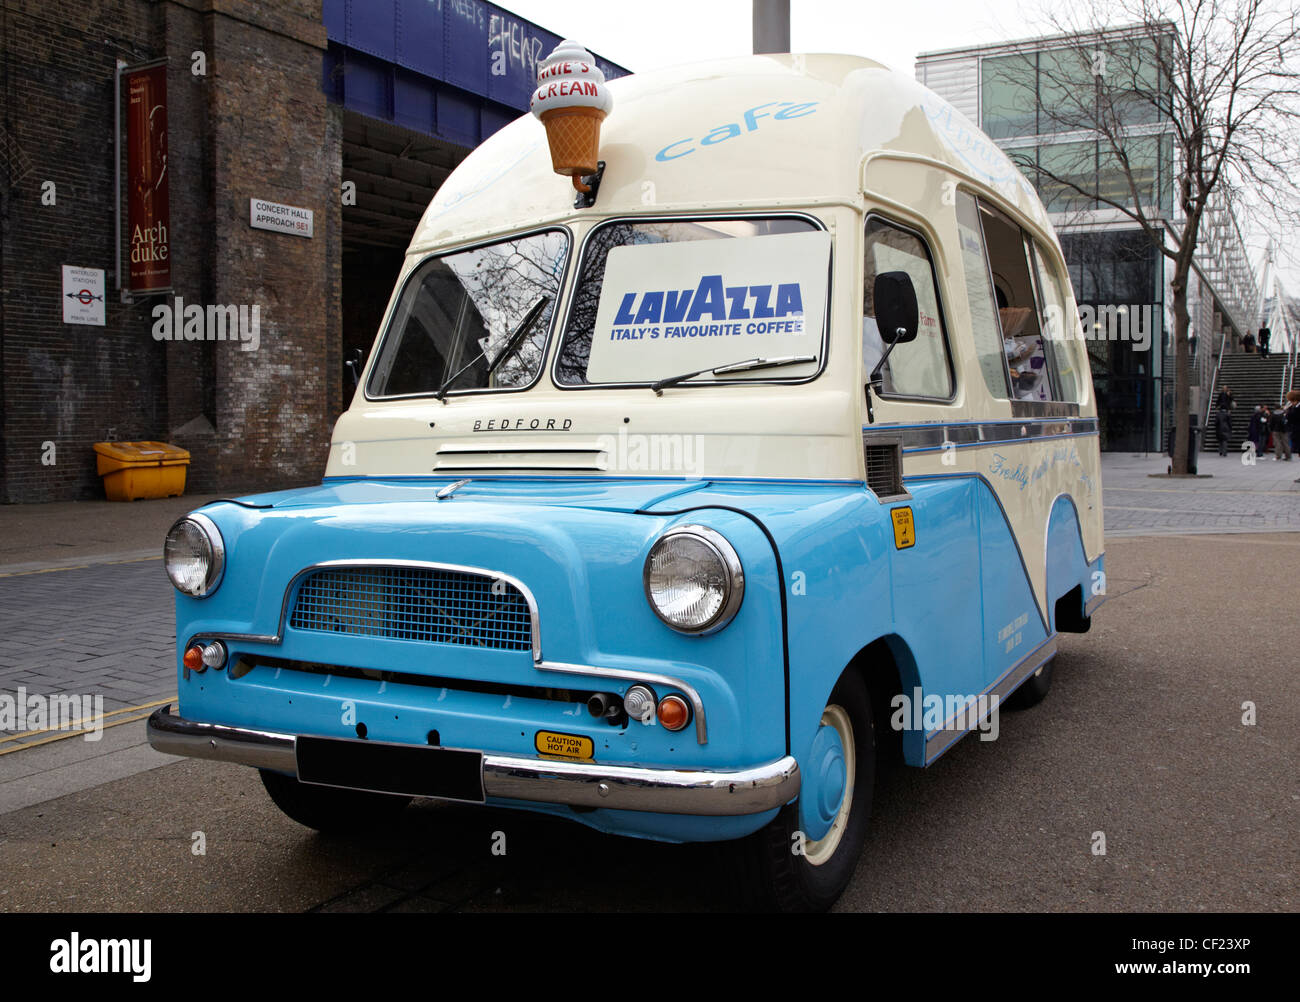 47a175b375a7 Refreshments Van Stock Photos   Refreshments Van Stock Images - Alamy